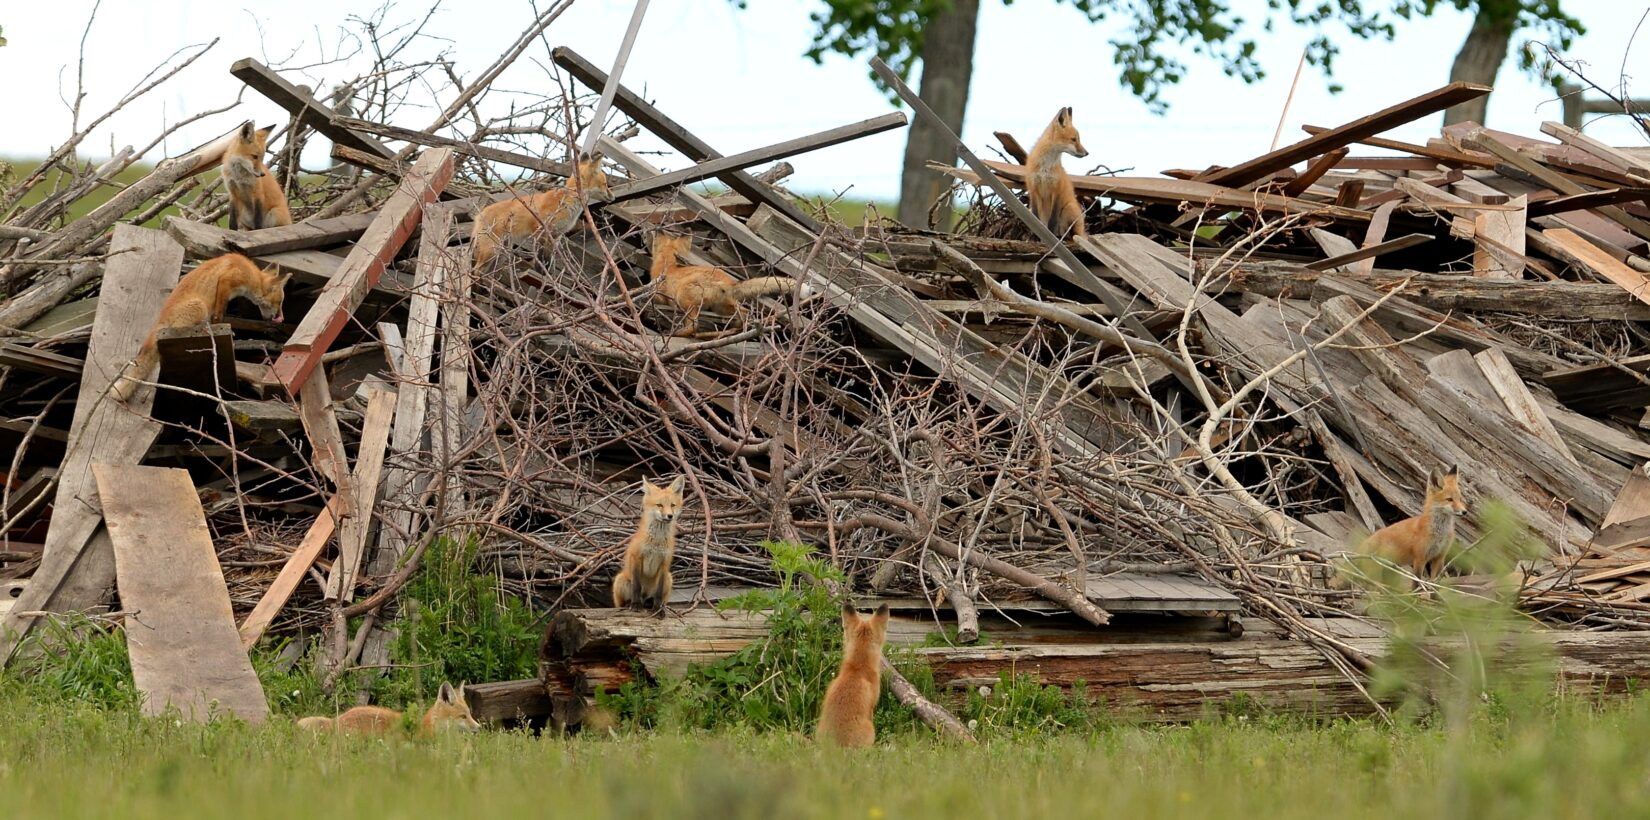 Red foxes in wood pile